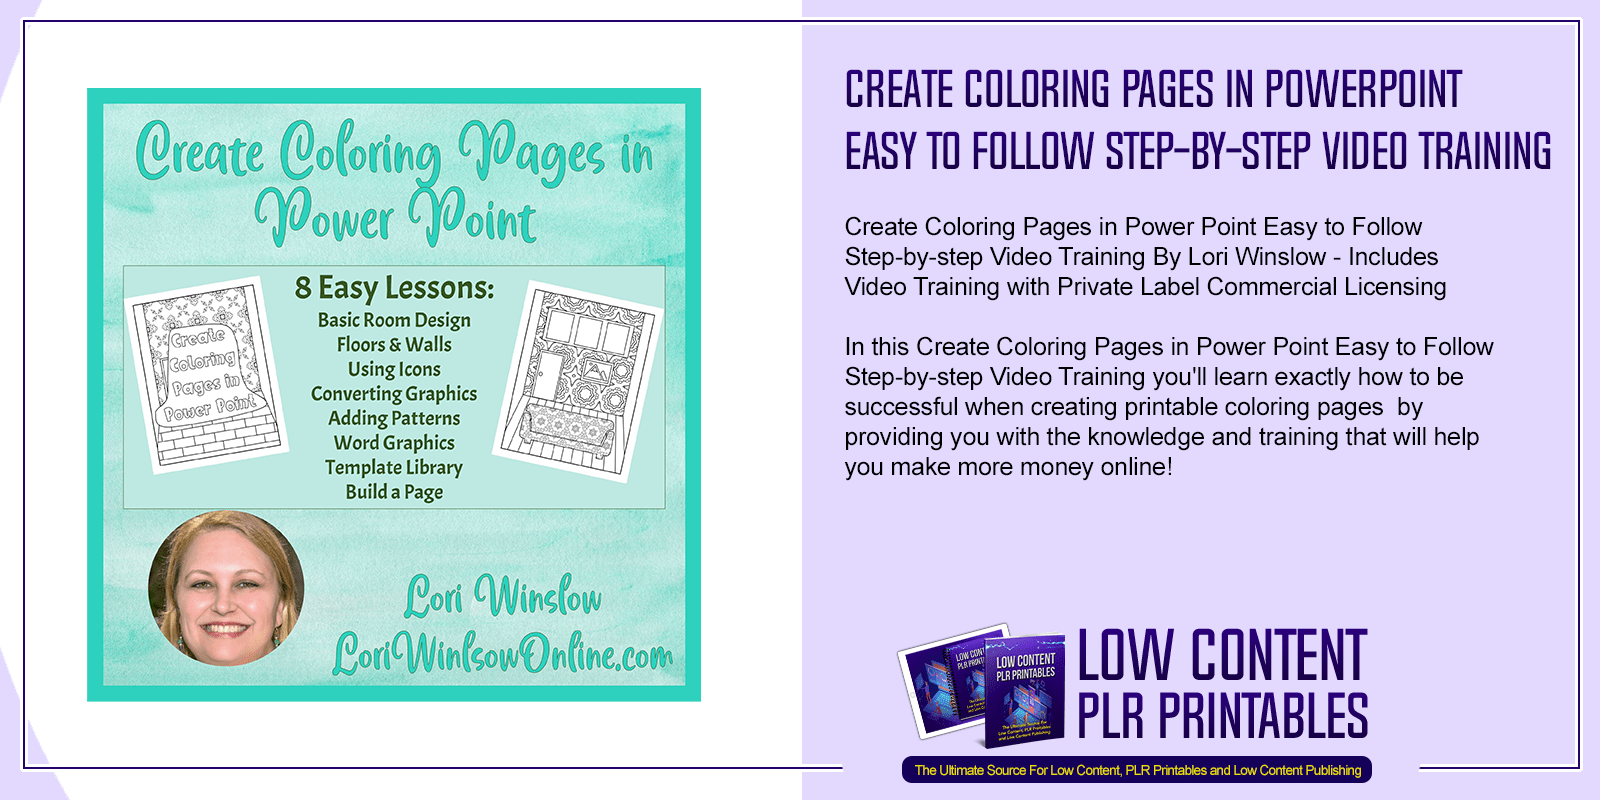 Create Coloring Pages in Power Point Easy to Follow Step by step Video Training